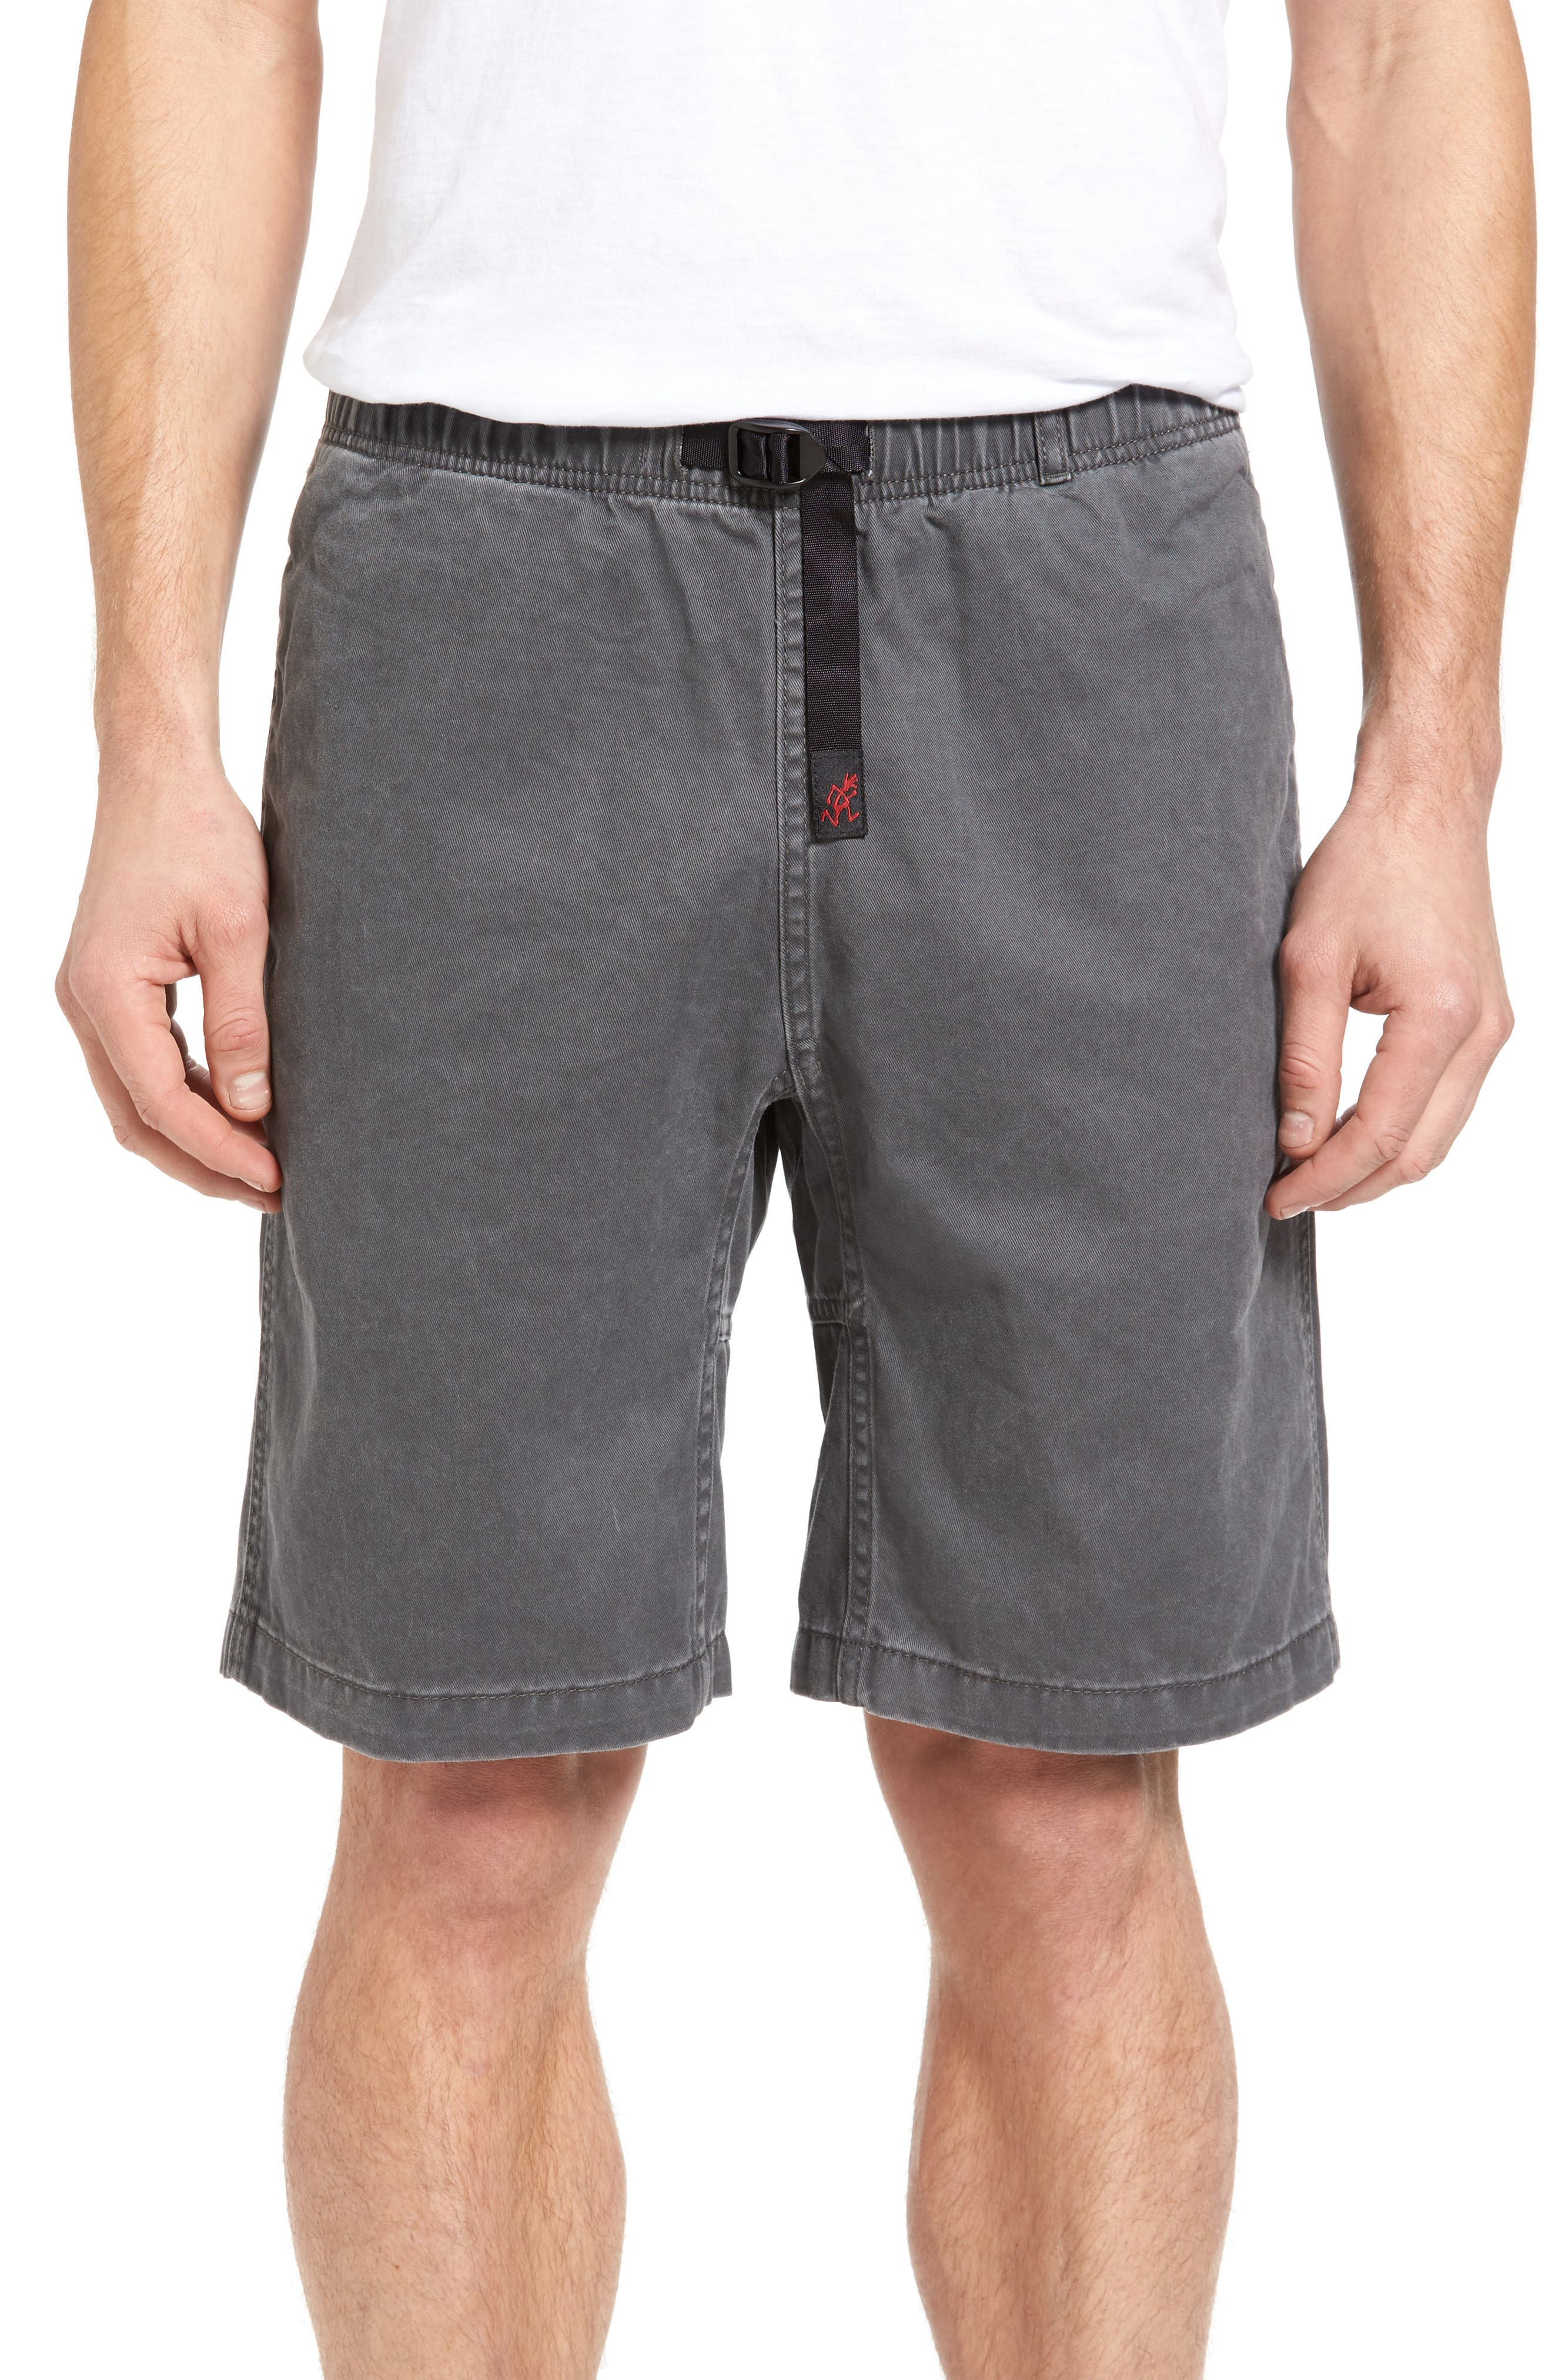 Rockin Sport Shorts,                             Alternate thumbnail 7, color,